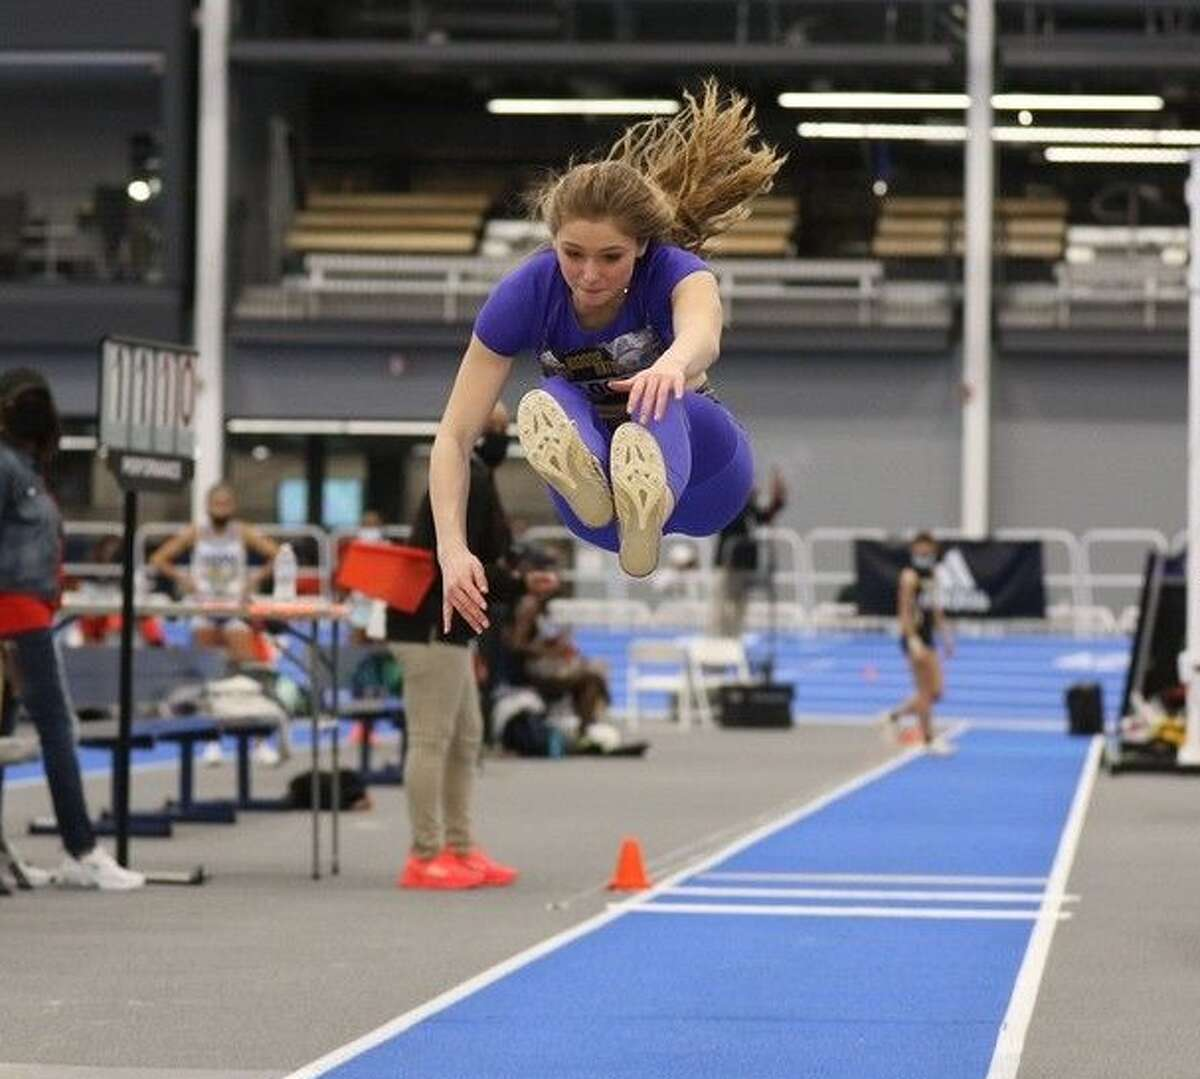 Gianna Locci of Stillwater High School competes in the long jump. (Courtesy of Chris Locci)